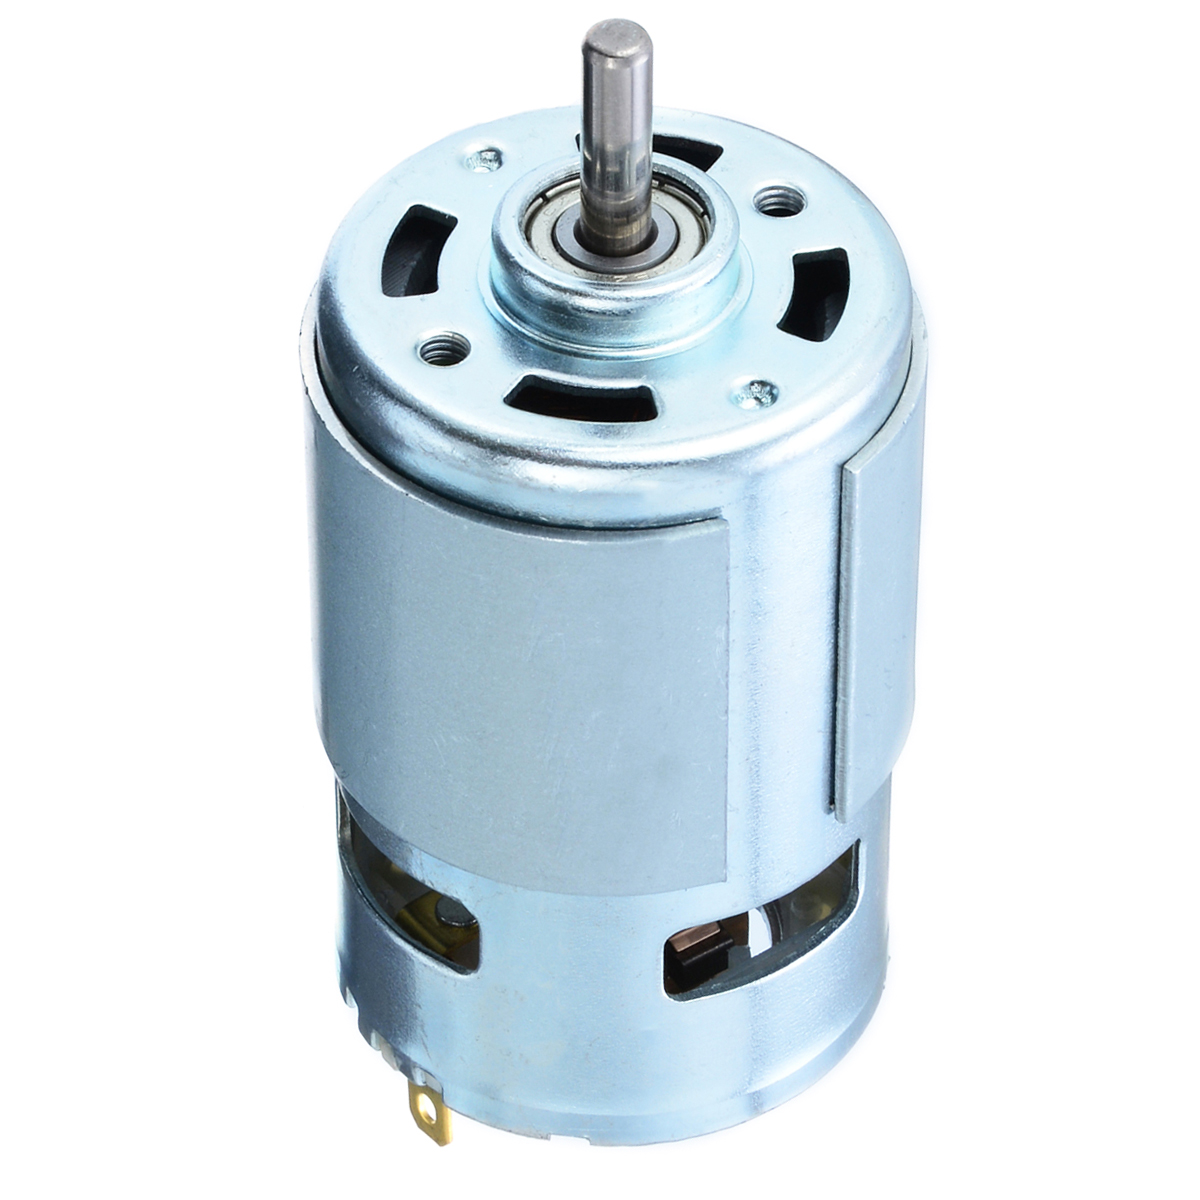 1pc Reliable 775 Micro Motor DC 12-24V 150W 13000-15000RPM Electric High Speed Power Motors 5mm Shaft For Car Wash Pump Sprayer dc 6v 24v high speed micro motor 130 type shaft diameter 2mm 2pcs for smart car ship models